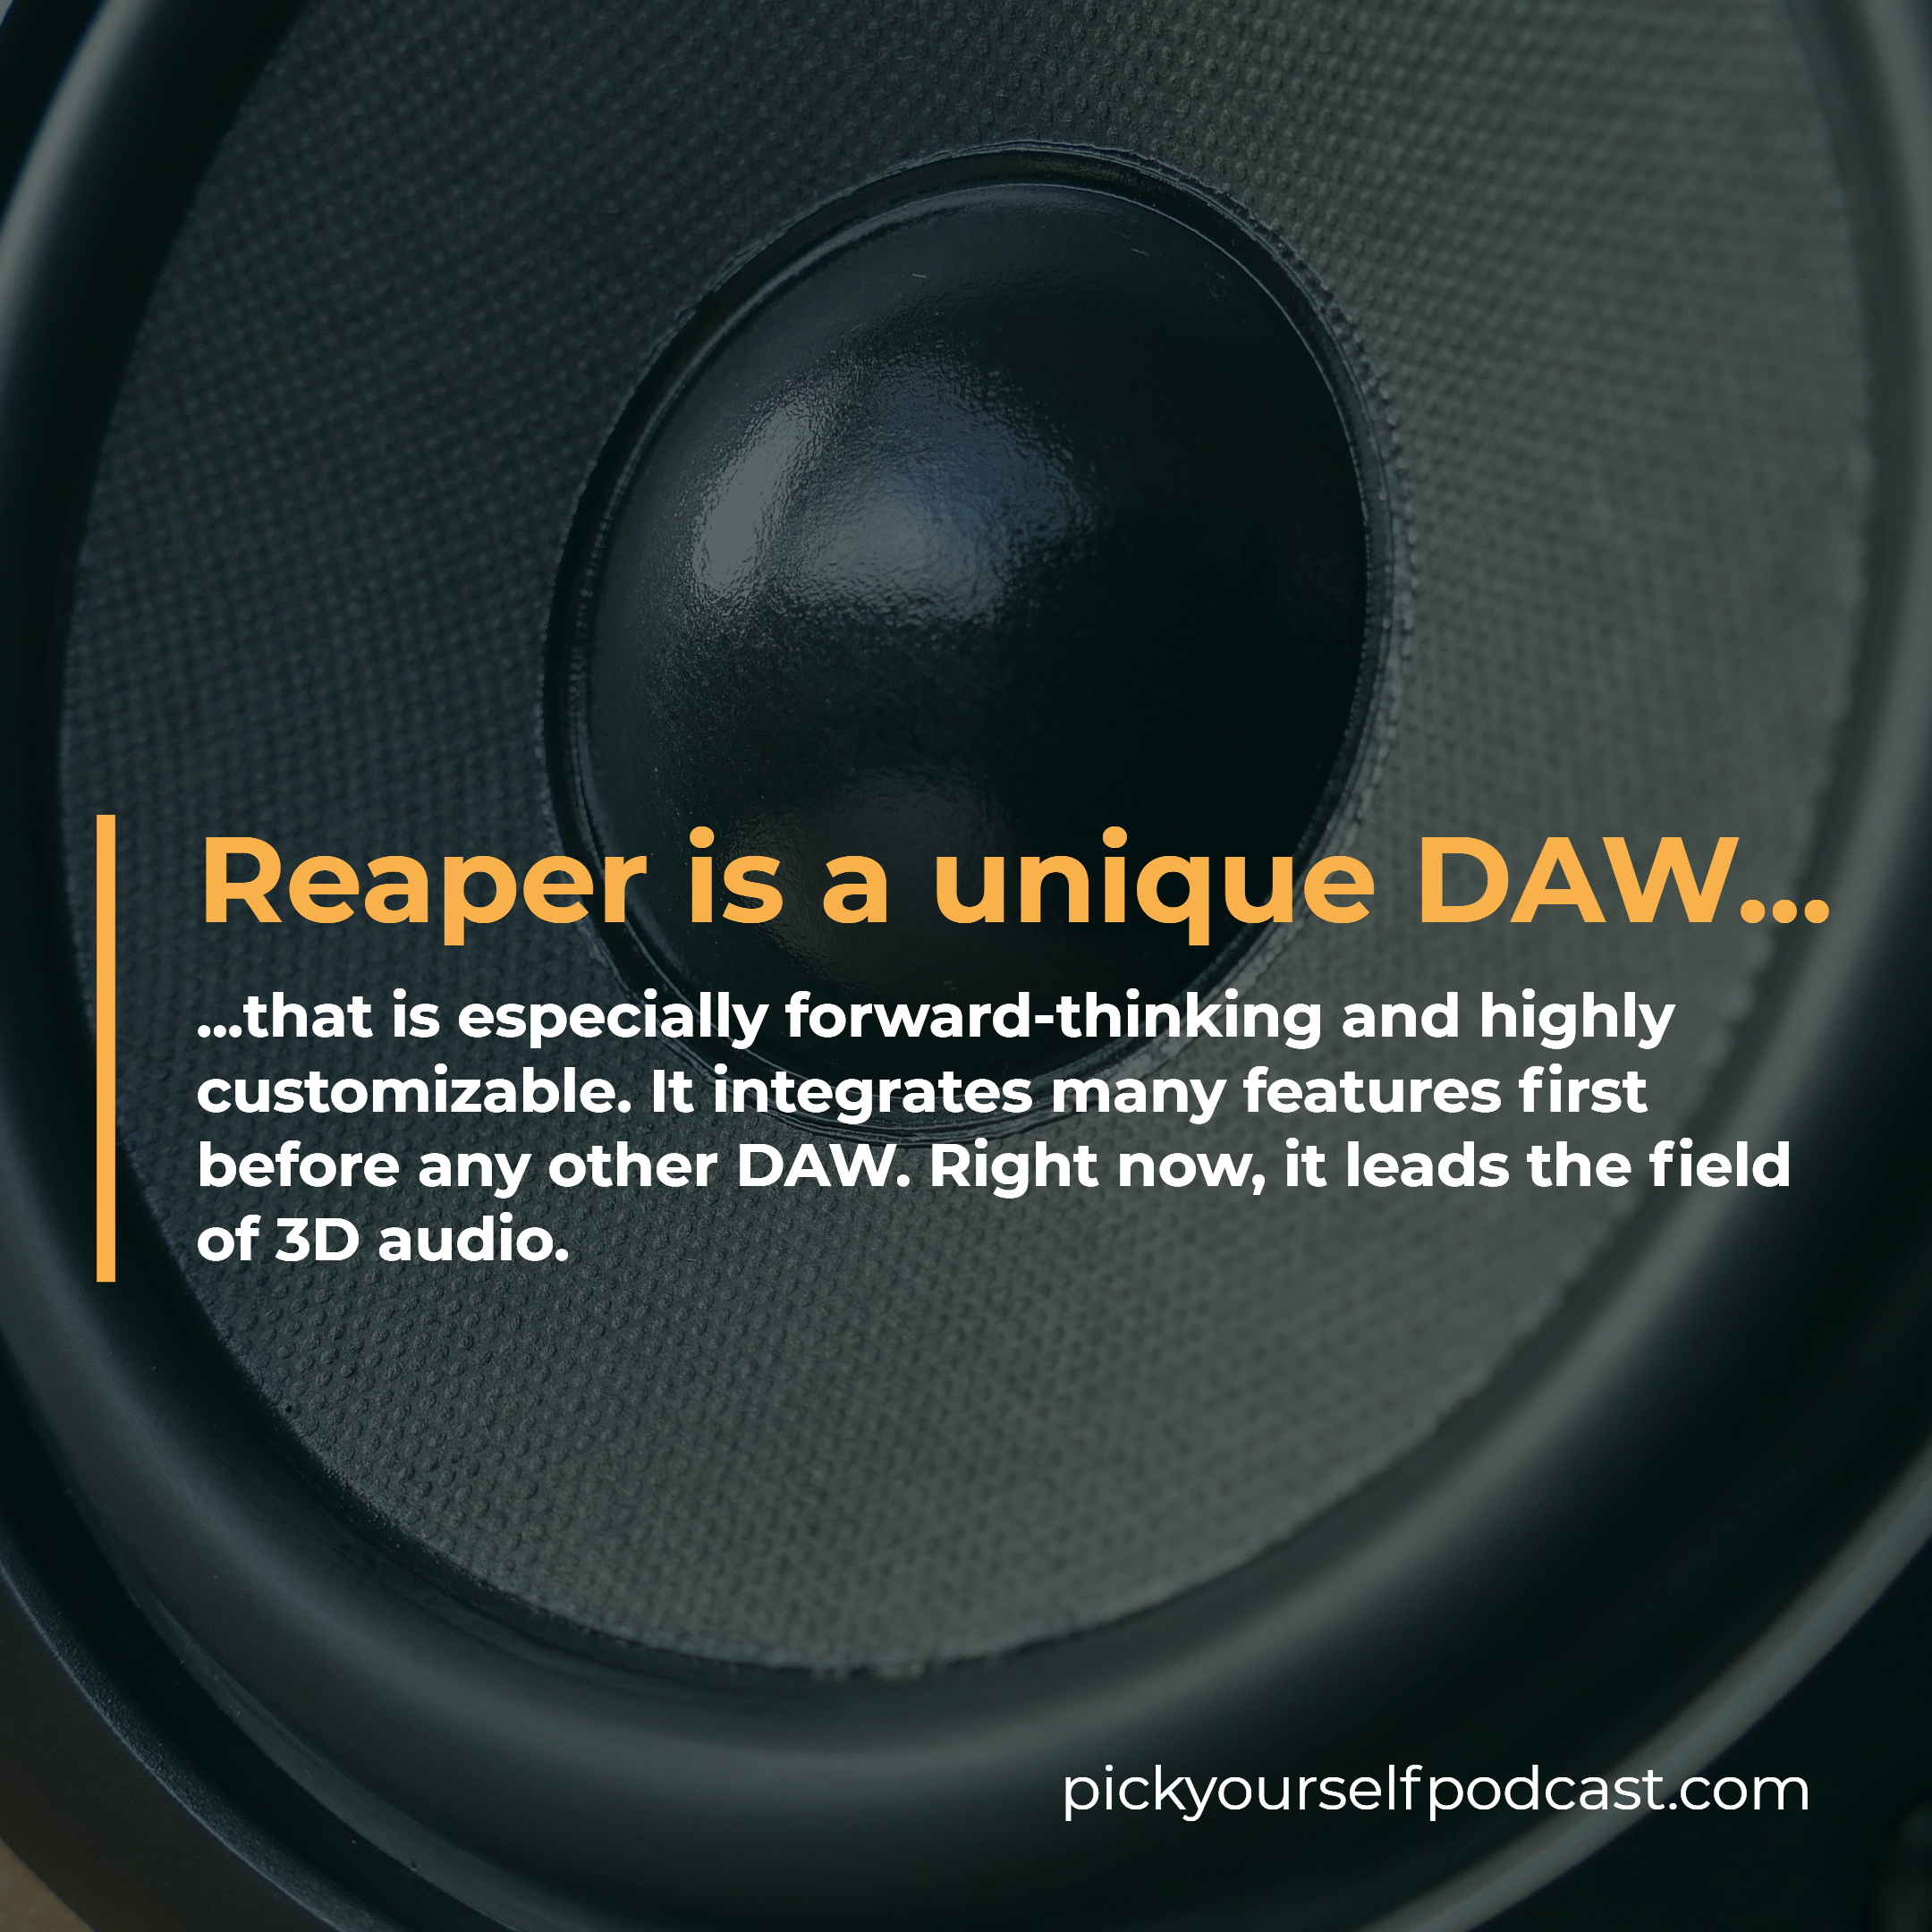 Reaper is a unique DAW that is especially customizable and forward-thinking.